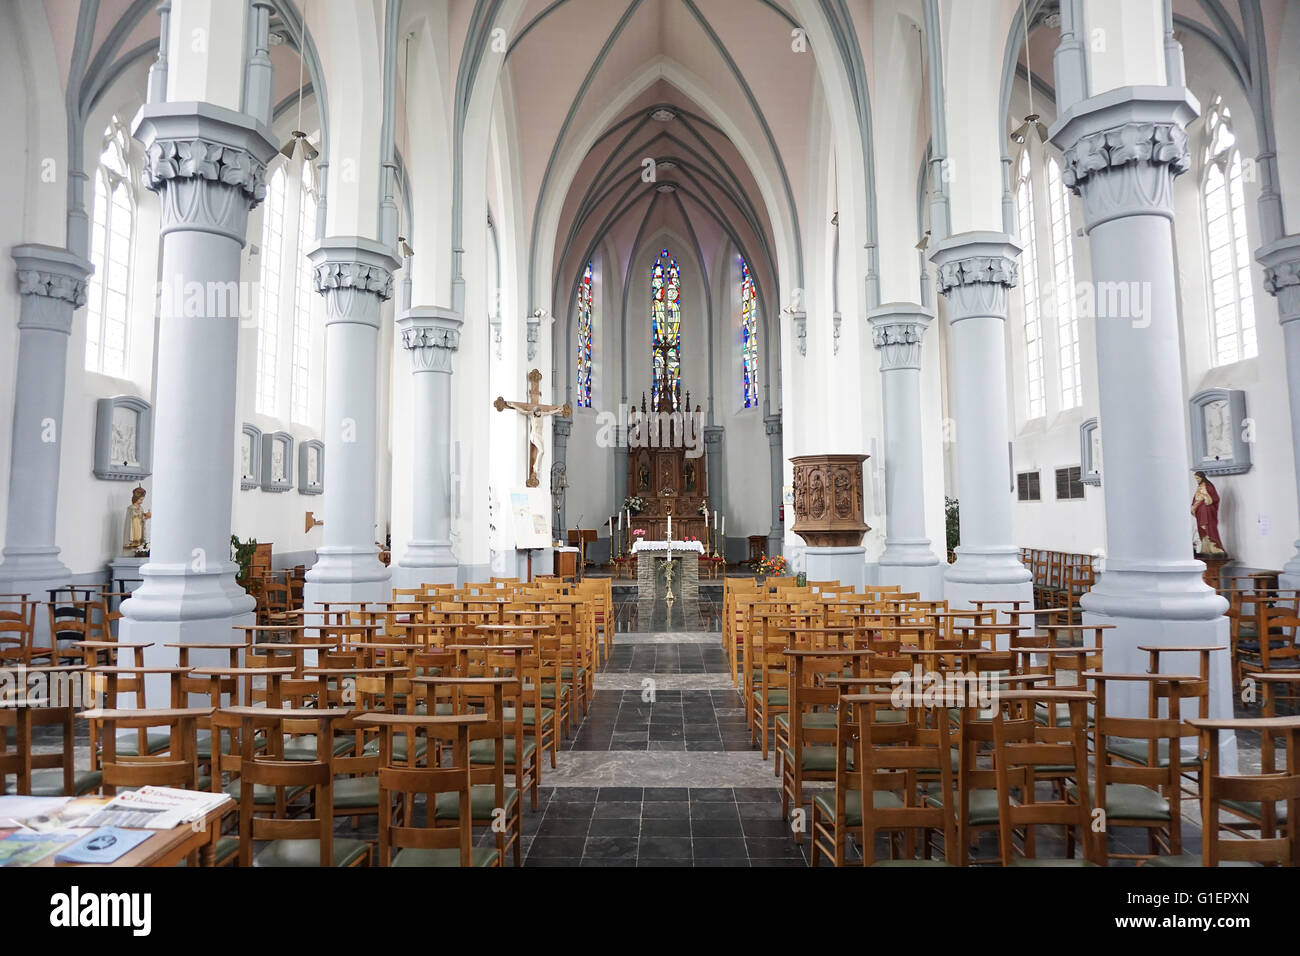 The Church of Orchimont in the Ardennes in Belgium - Stock Image